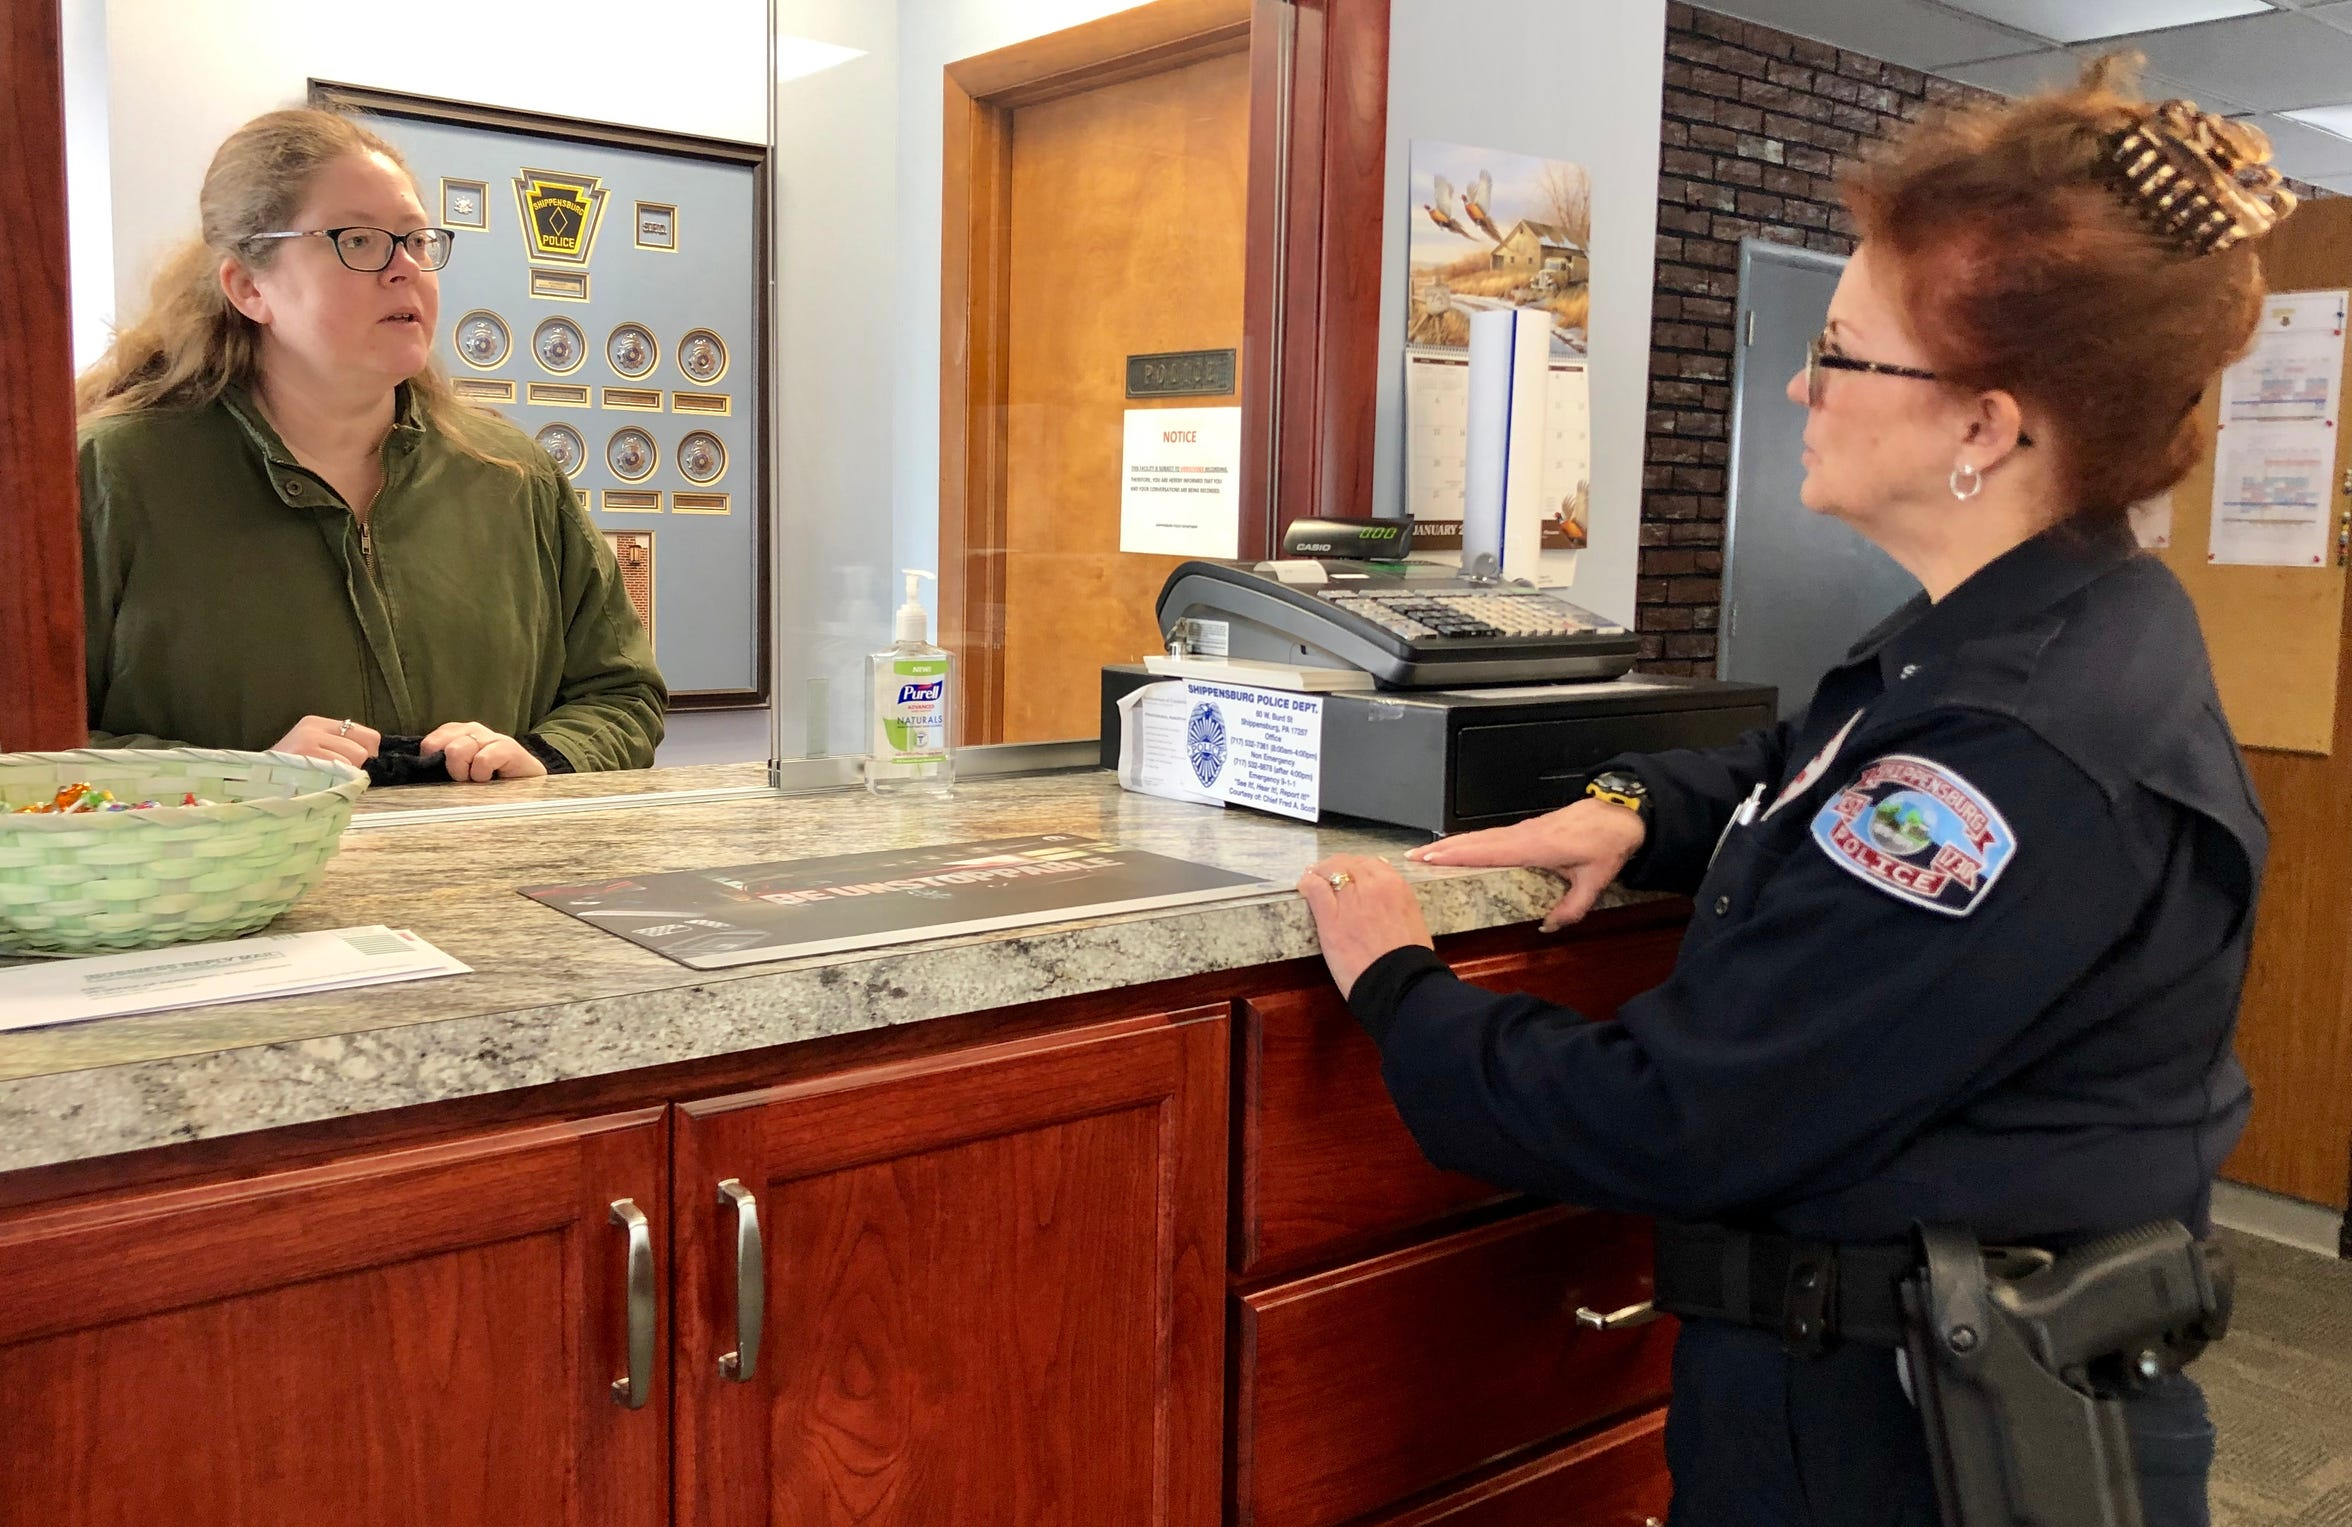 Shippensburg Police Chief Meredith Dominick (right) talks to Stephanie Taylor (left), Vermont, at the station on West Burd Street the morning of Friday, Jan. 18, 2019.